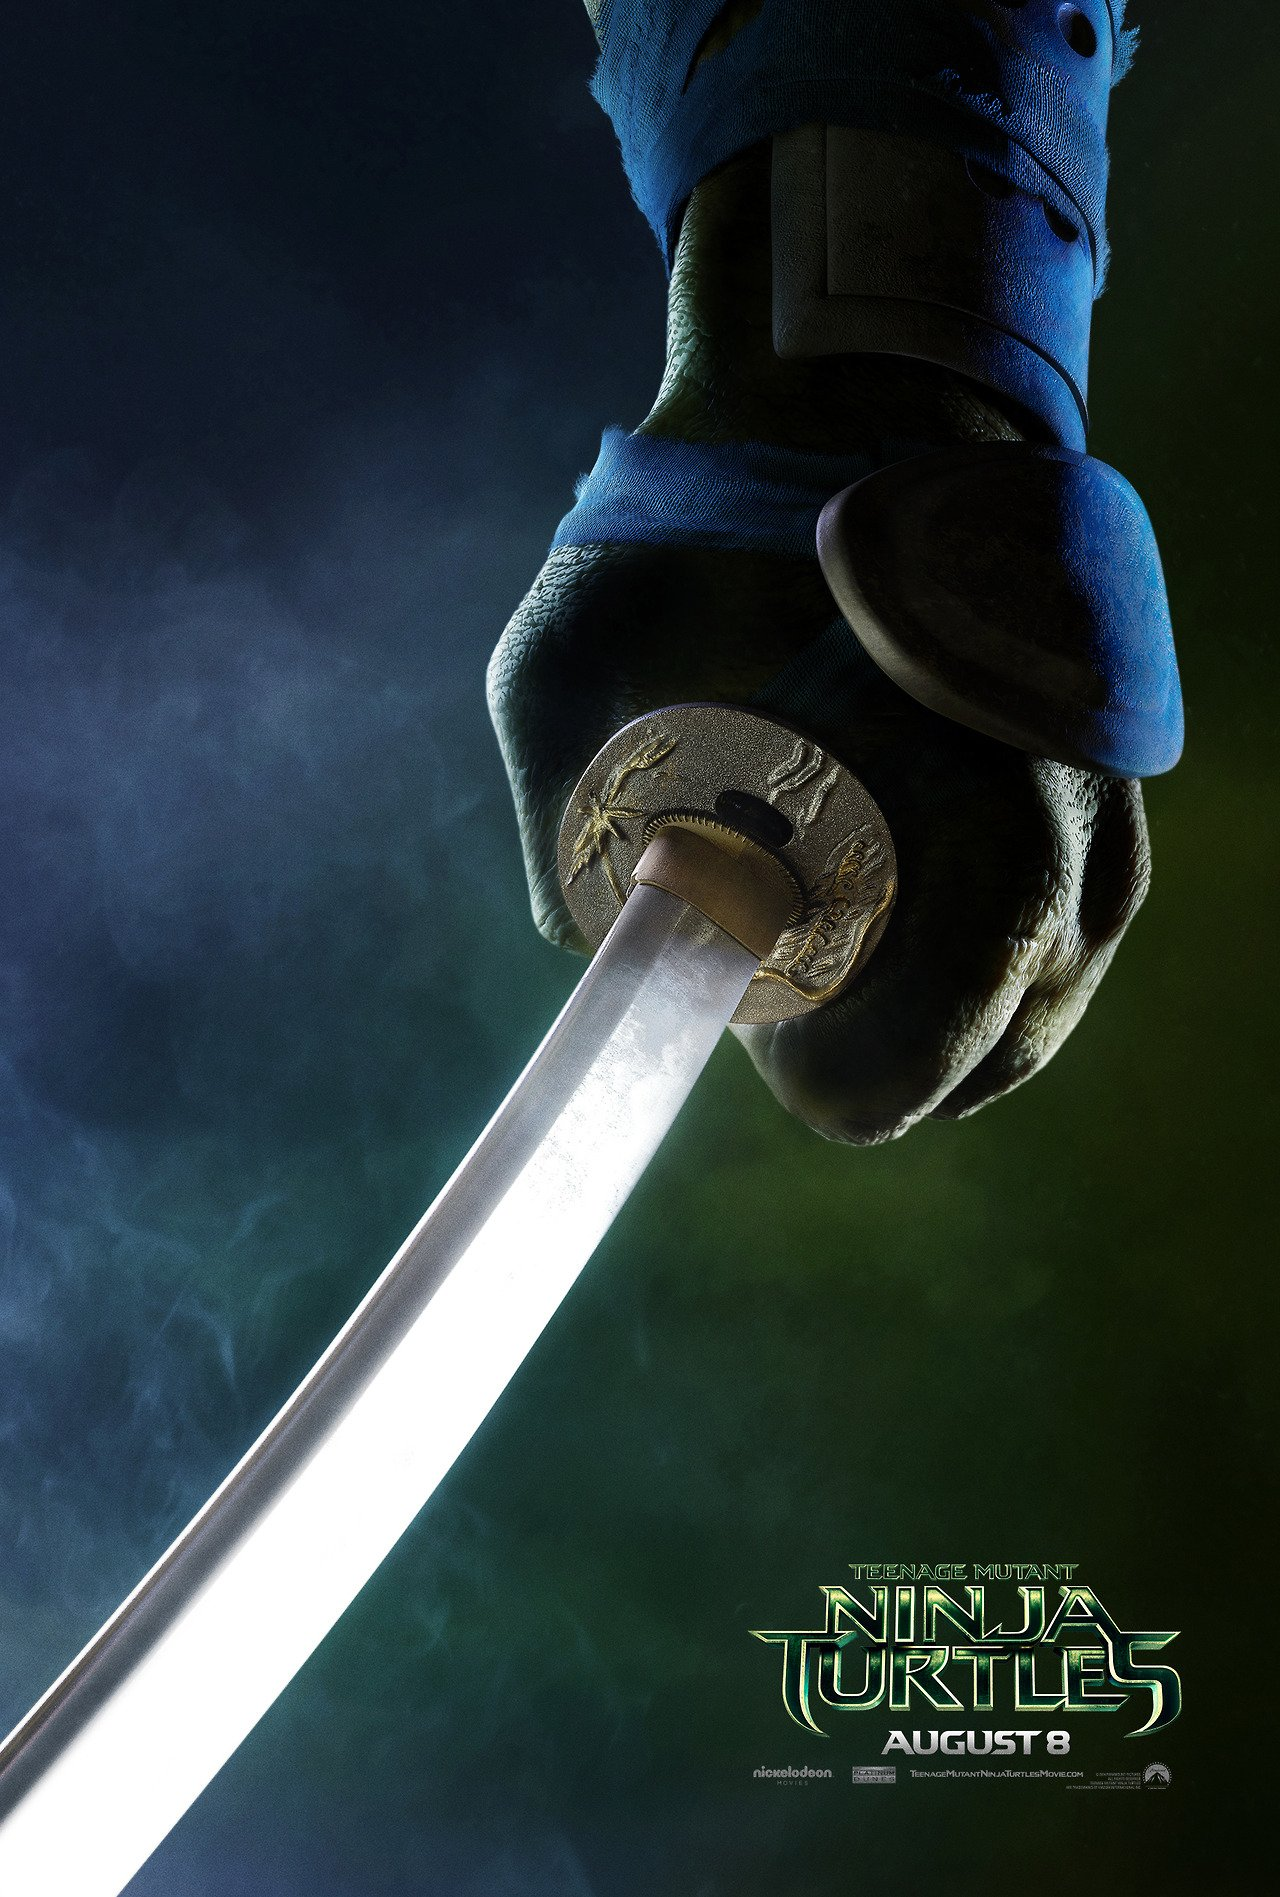 First Posters For Teenage Mutant Ninja Turtles Released